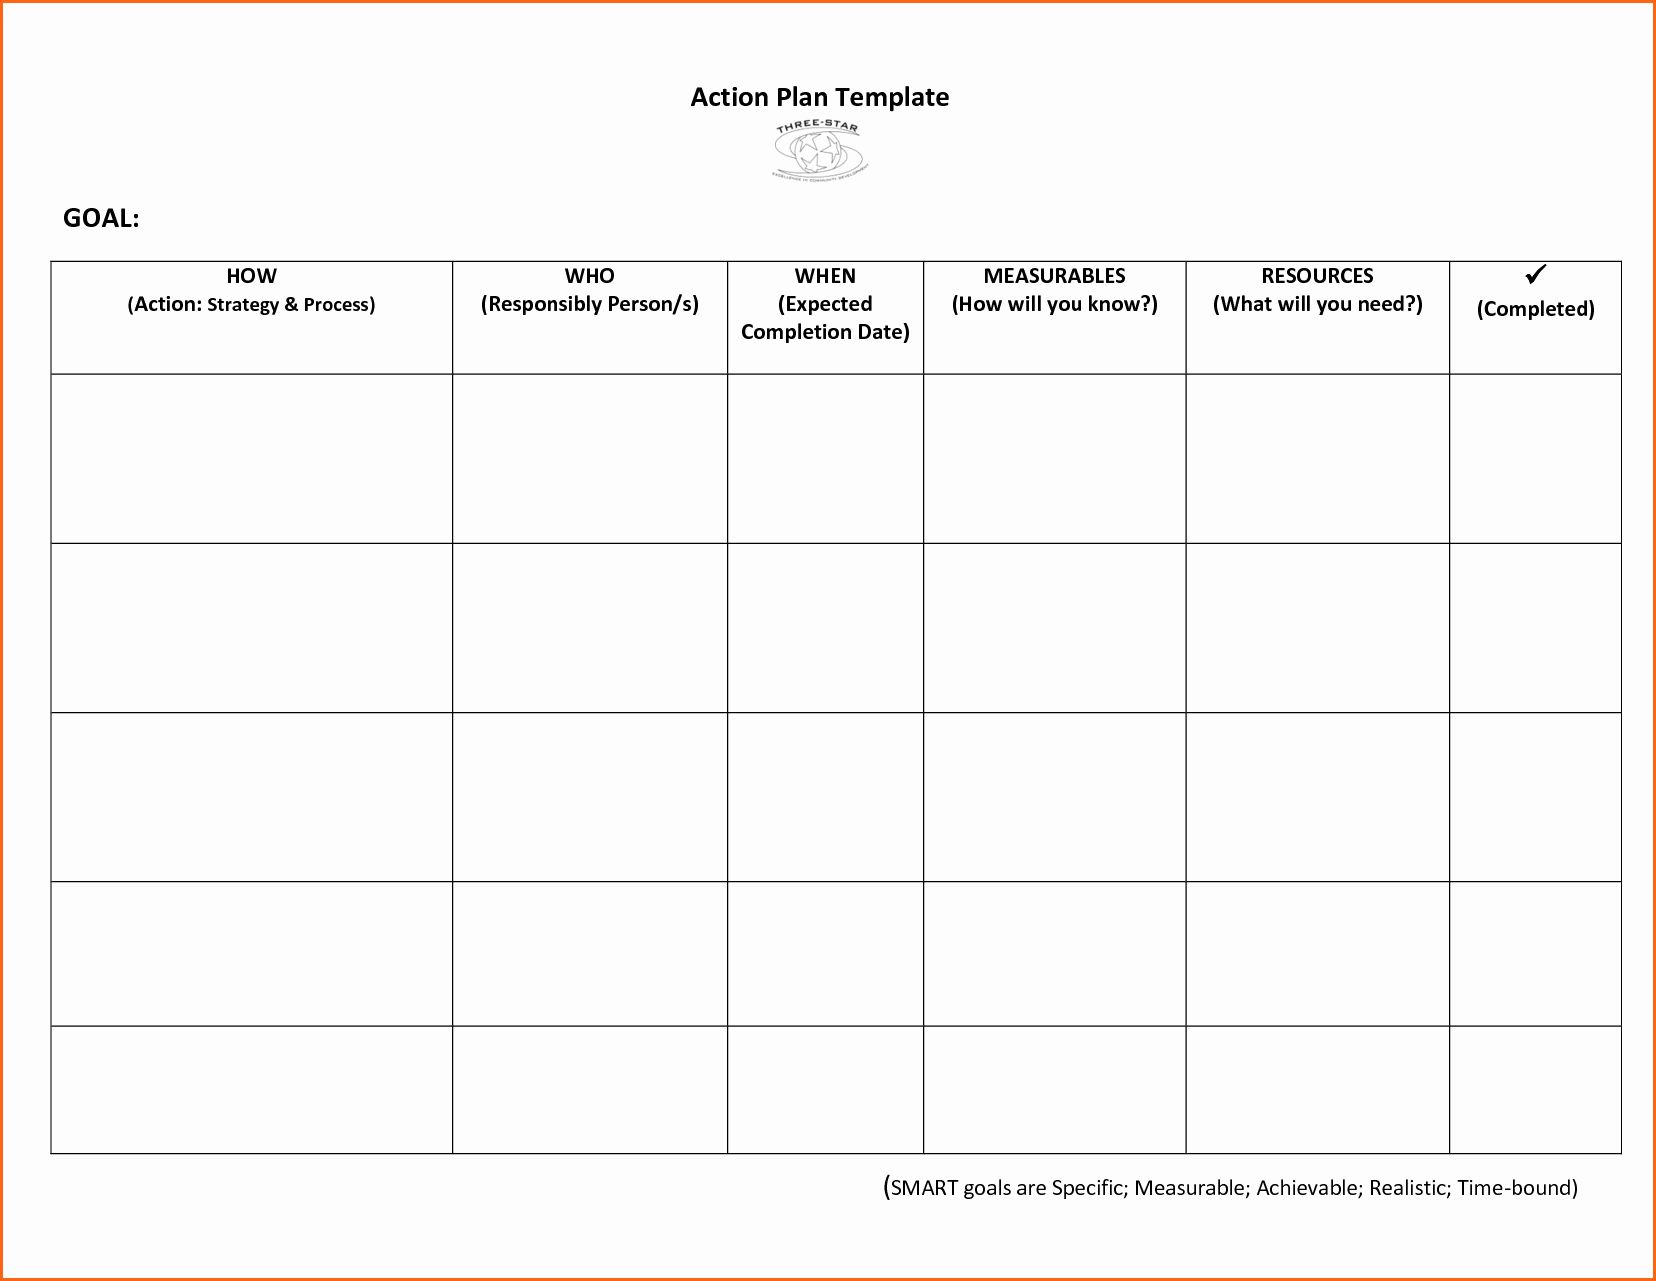 25 Smart Action Plans Template in 2020 (With images